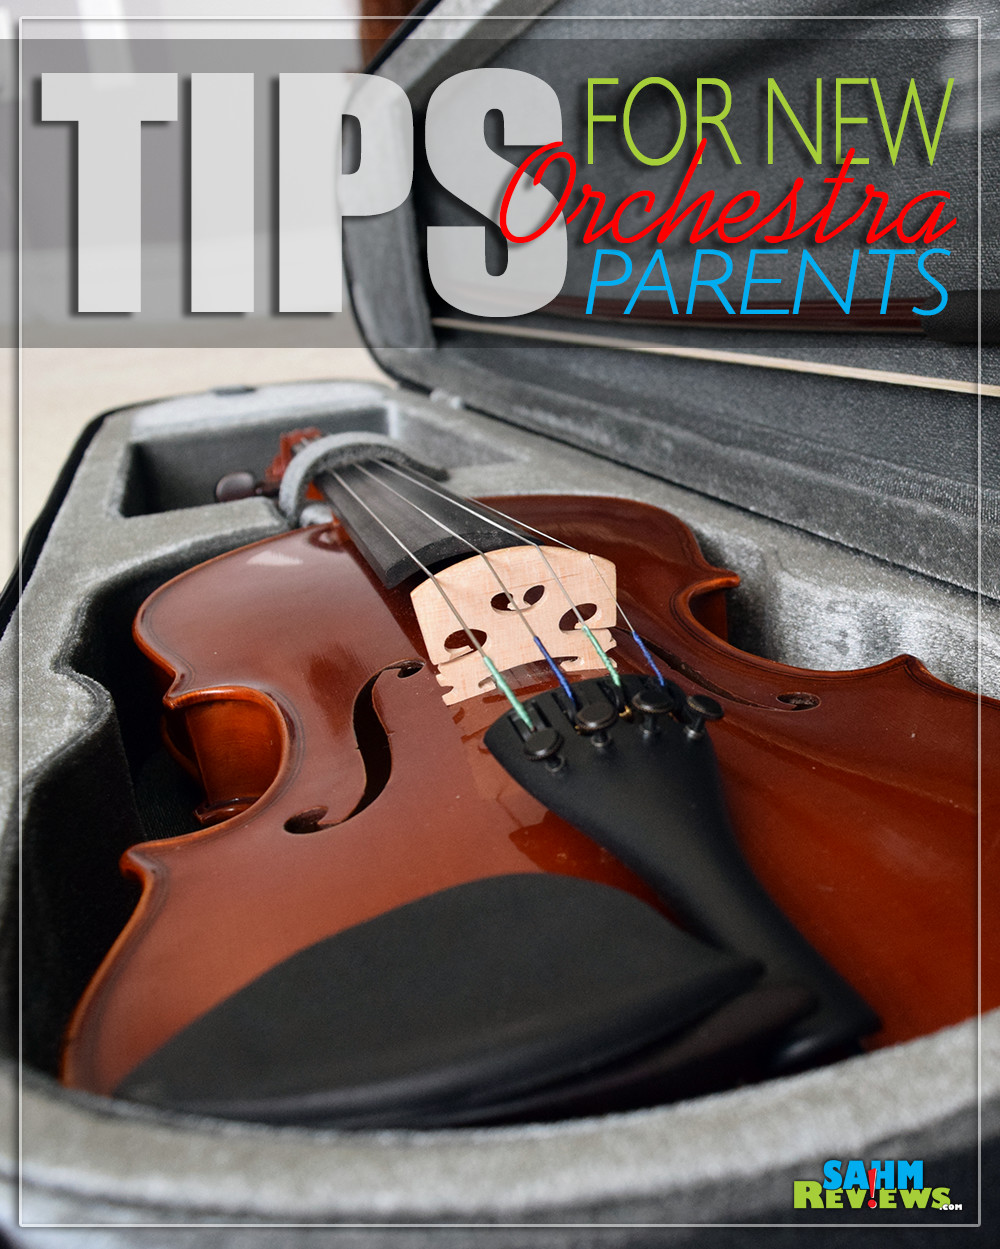 Have a beginner orchestra student? Tips for new orchestra parents. - SahmReviews.com